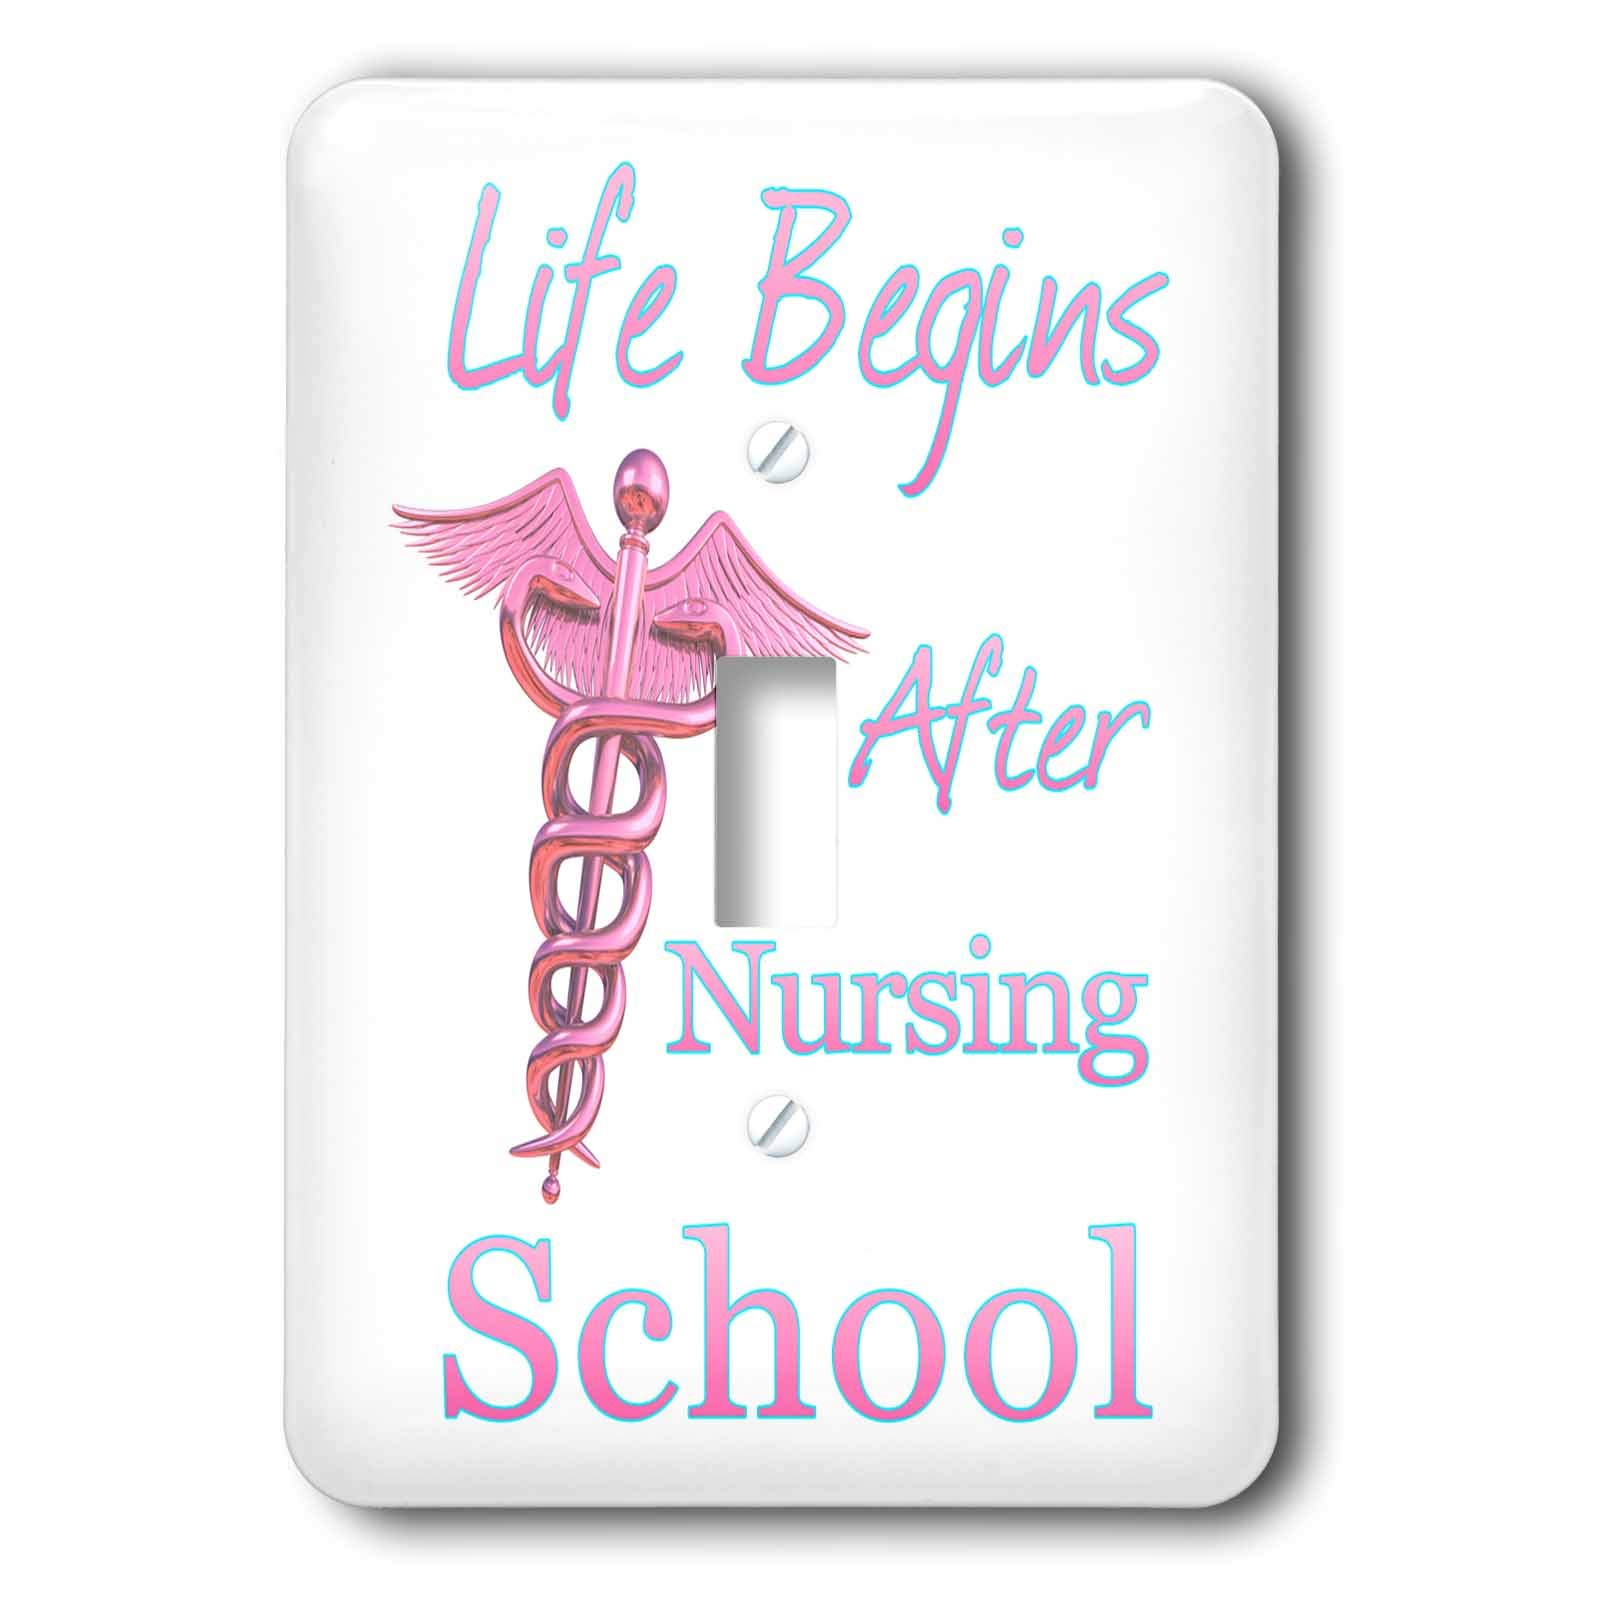 3dRose MacDonald Creative Studios – Nursing - Life Begins After Nursing School funny nursing gift for nurse graduate - Light Switch Covers - single toggle switch (lsp_295398_1)